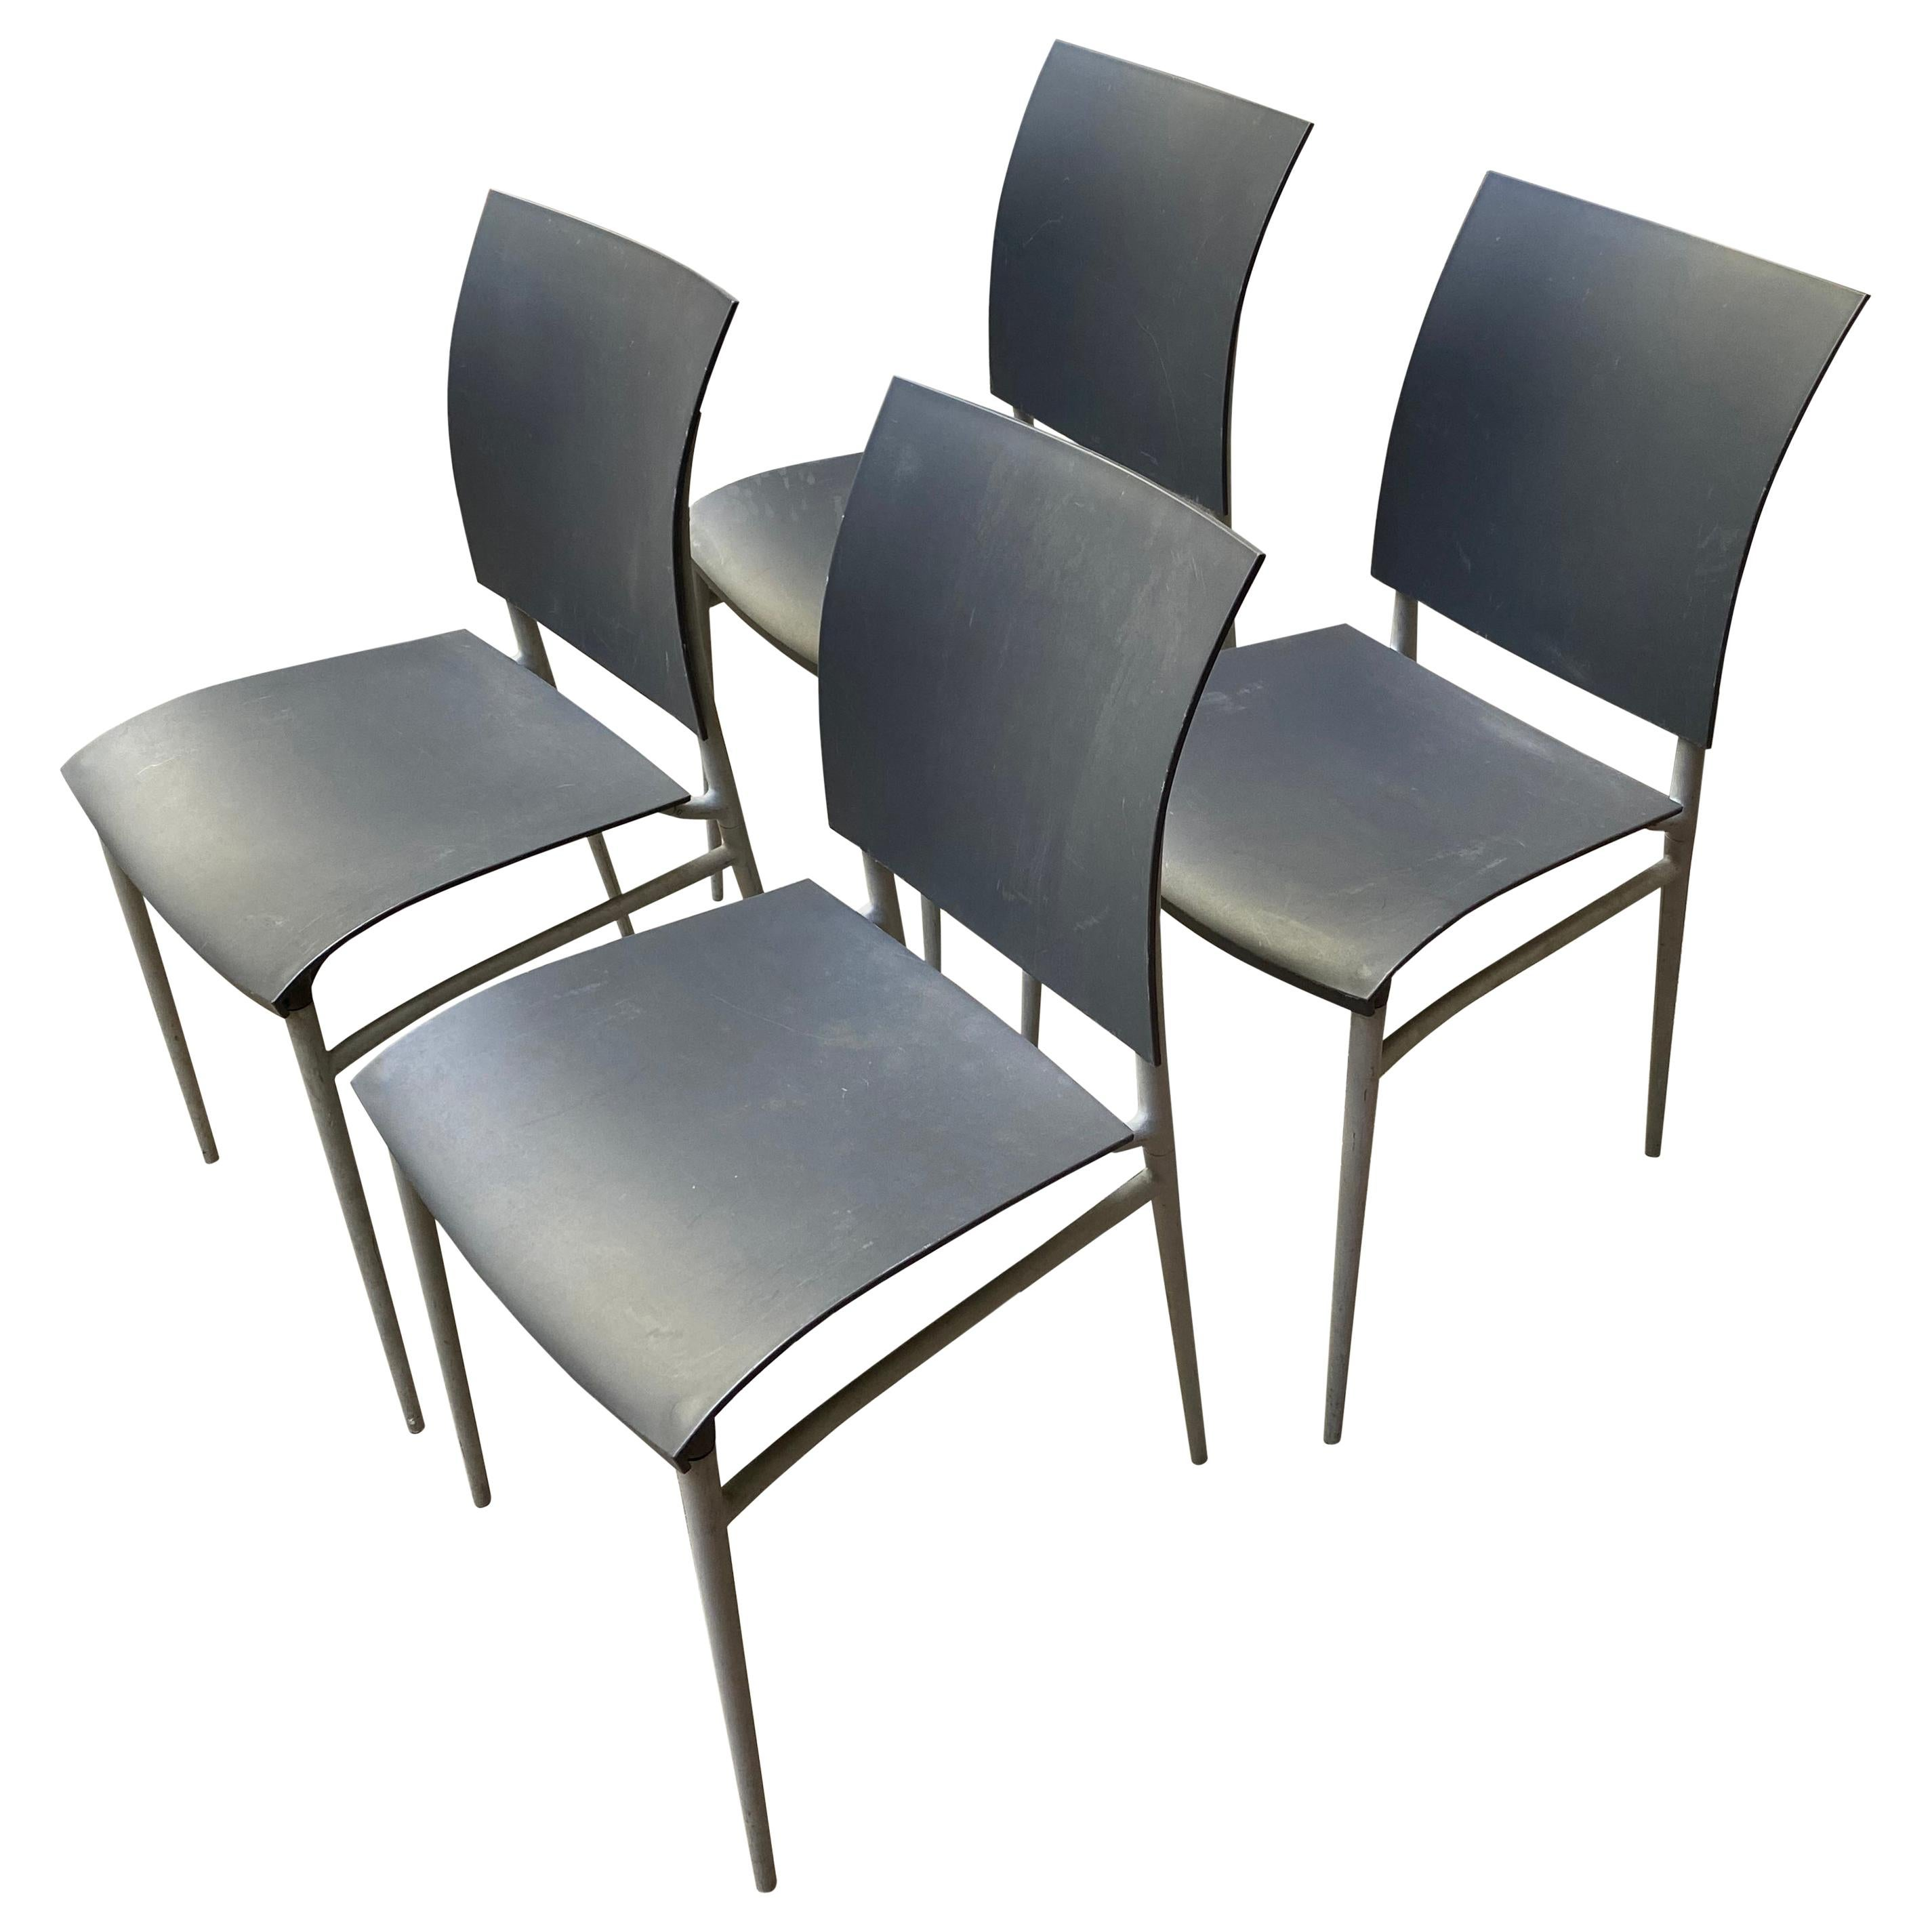 Philippe Starck Set of 4 Chairs